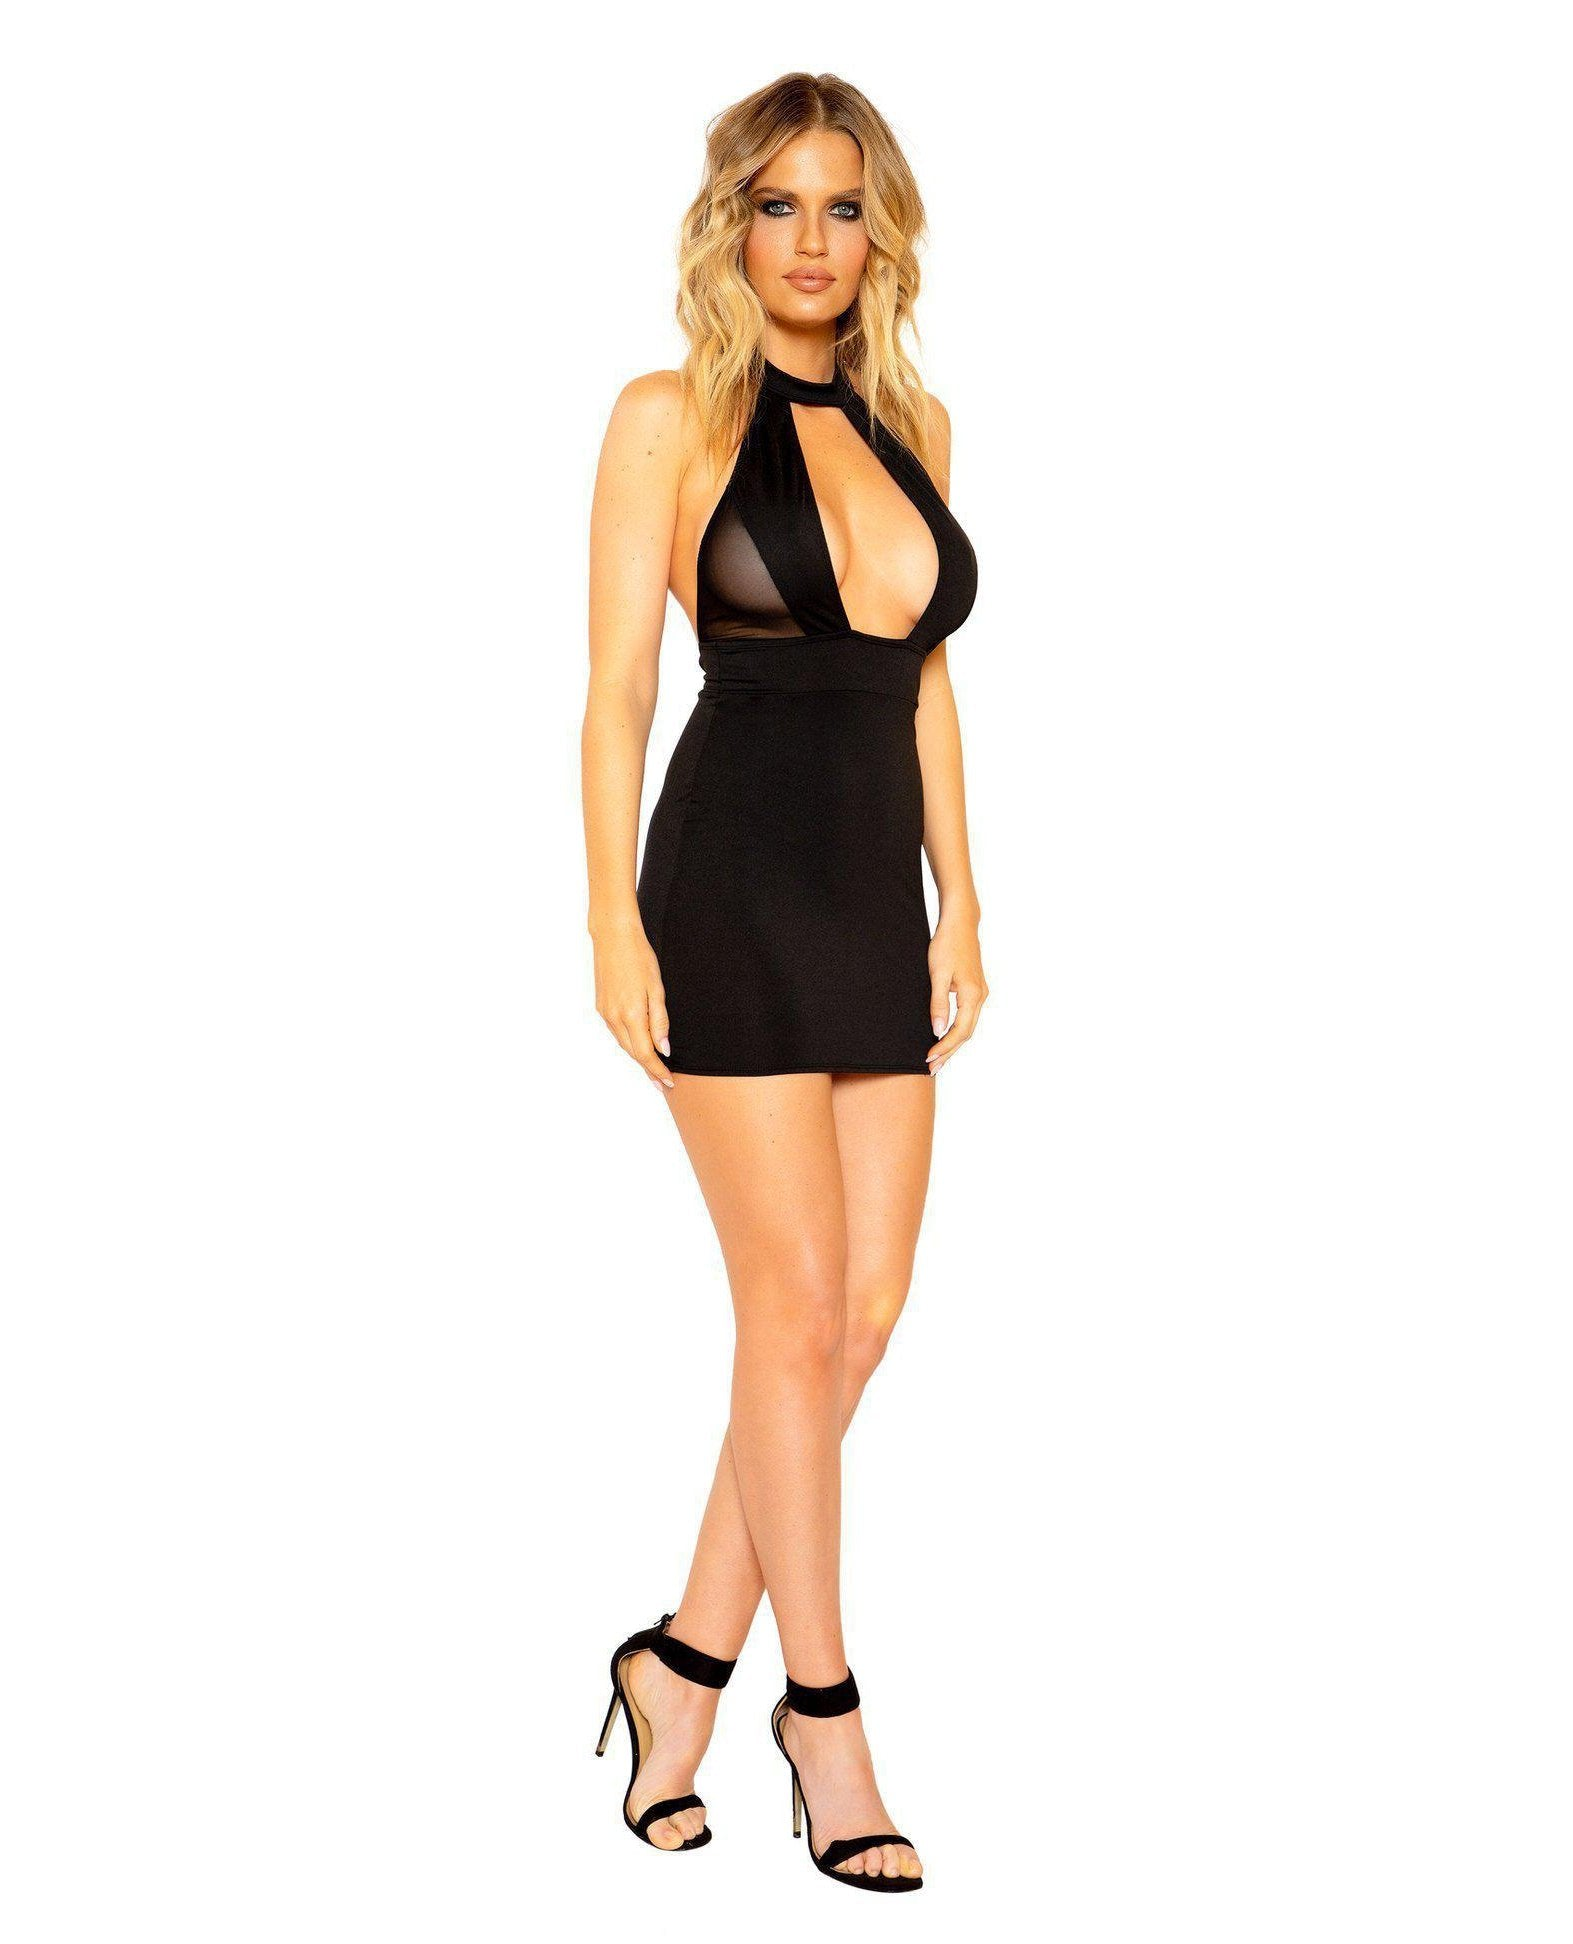 Halter Neck Dress with Large Cutout and Sheer Mesh Detail club wear Size SmallColor BlackNakees